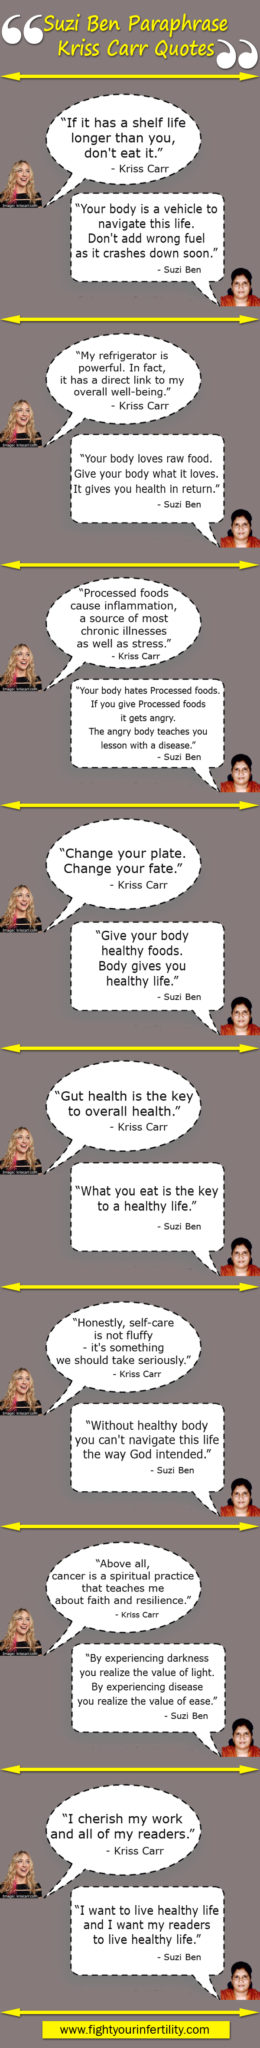 Kriss Carr Quotes, quotes, health quotes, food quotes, health quotes, Infographic